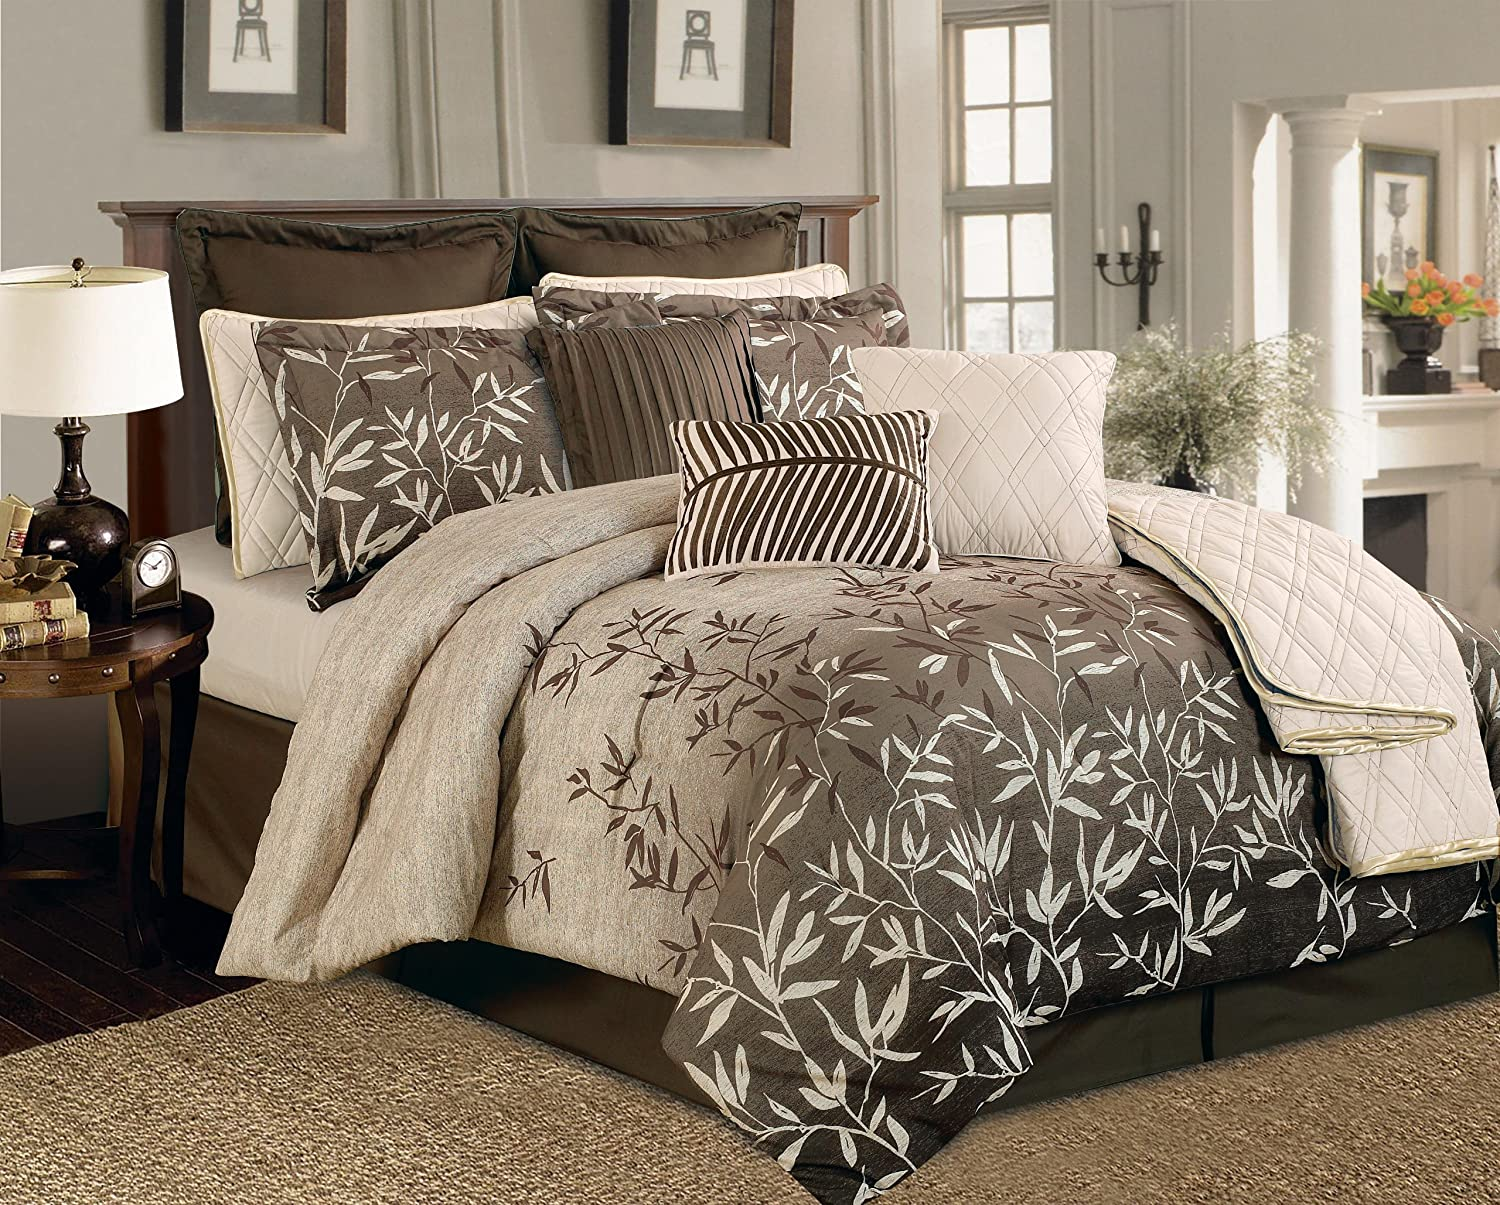 Amazon Com 12 Pieces Taupe Luxury Comforter Set Bed In A Bag